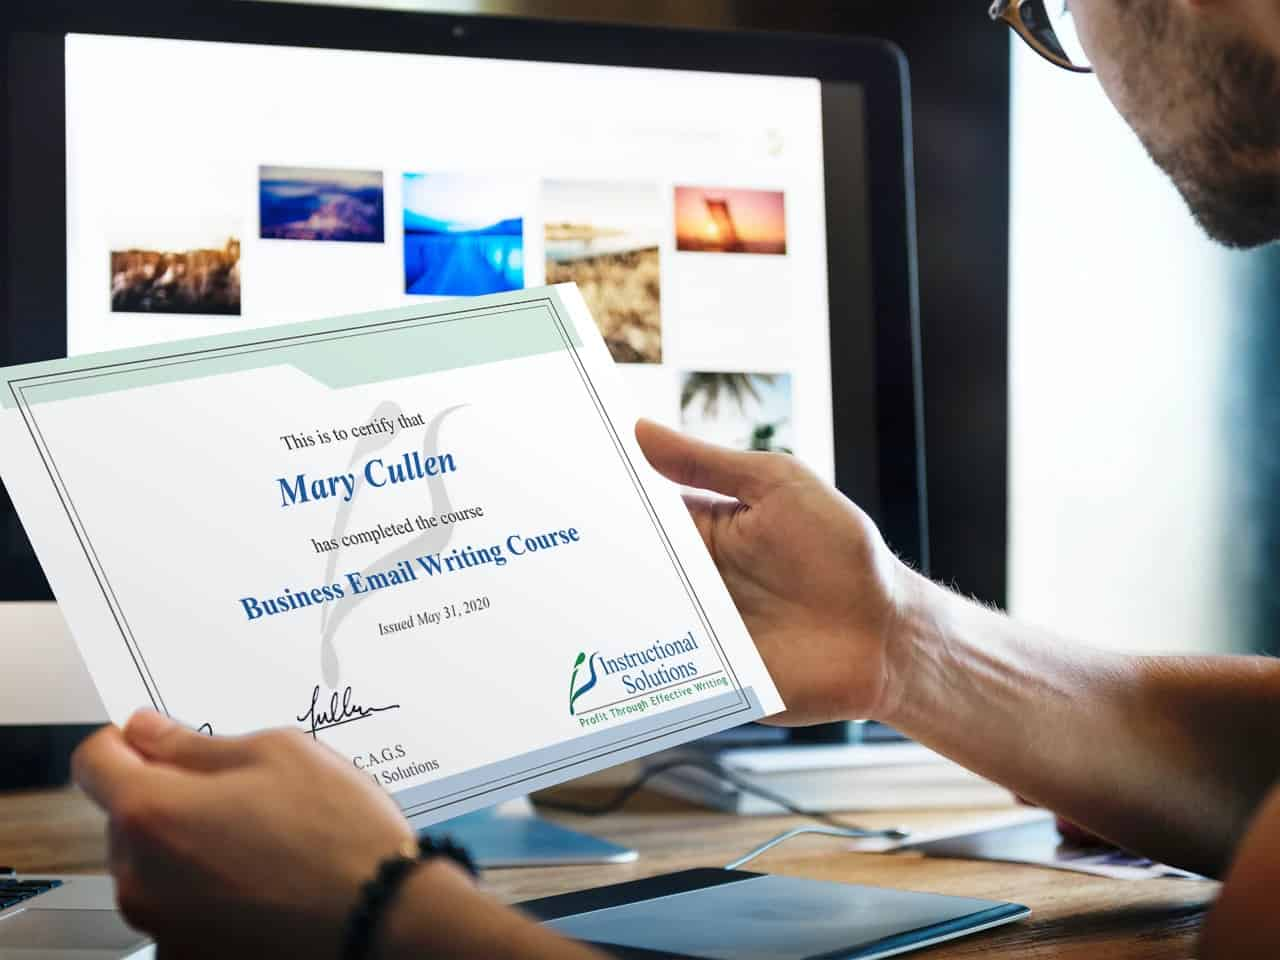 business-email-course-certificate